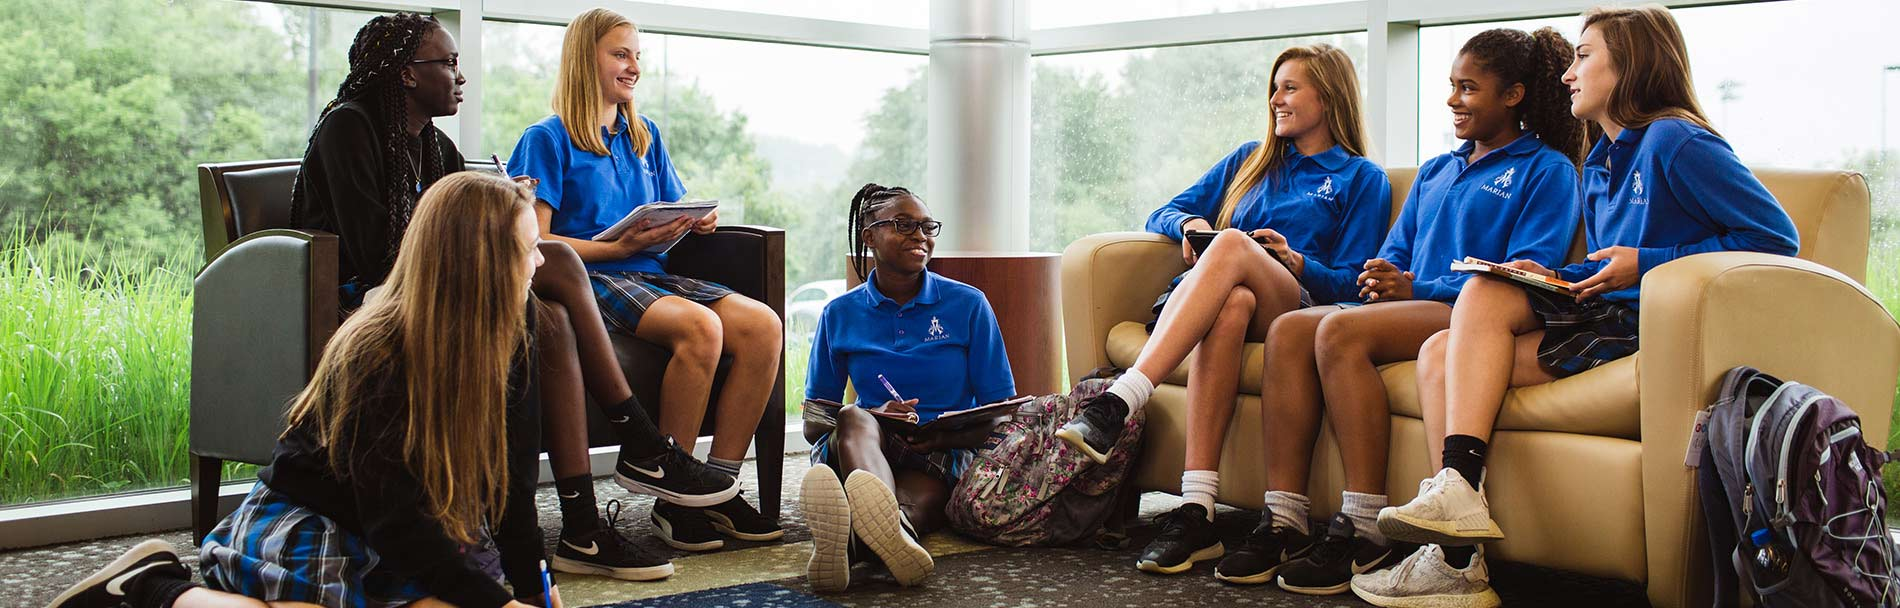 Marian High School students gather to study.